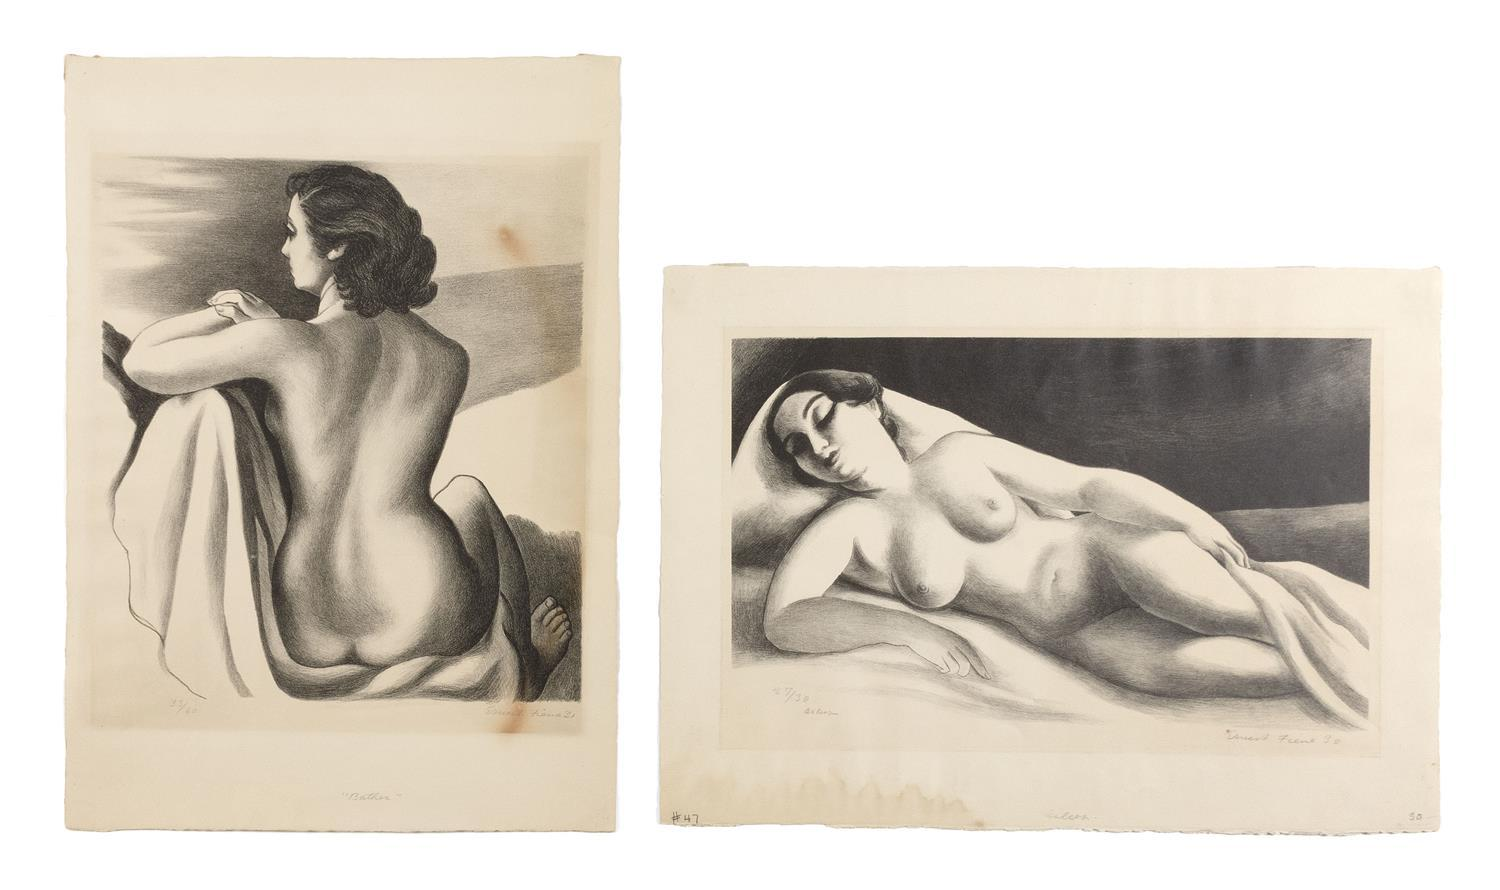 ERNEST FIENE, New York/Germany, 1894-1965, Two unframed lithographs: